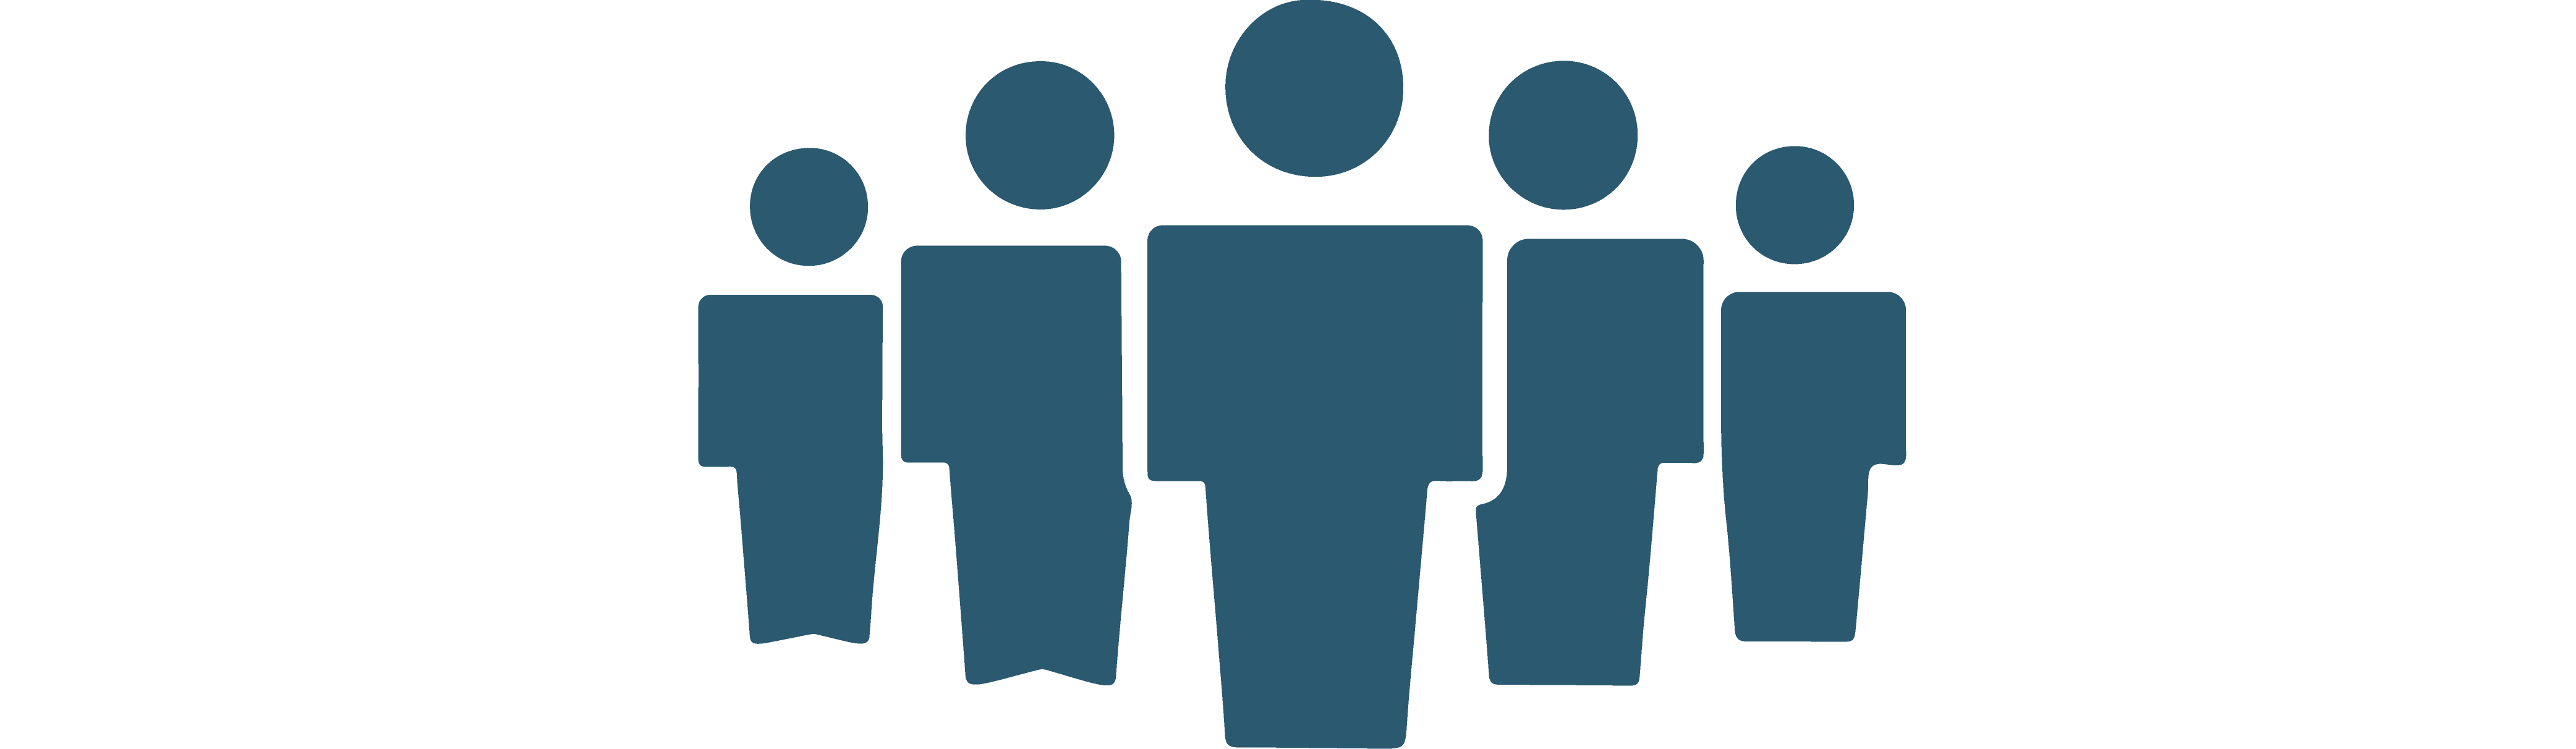 Clipart of group of people standing together